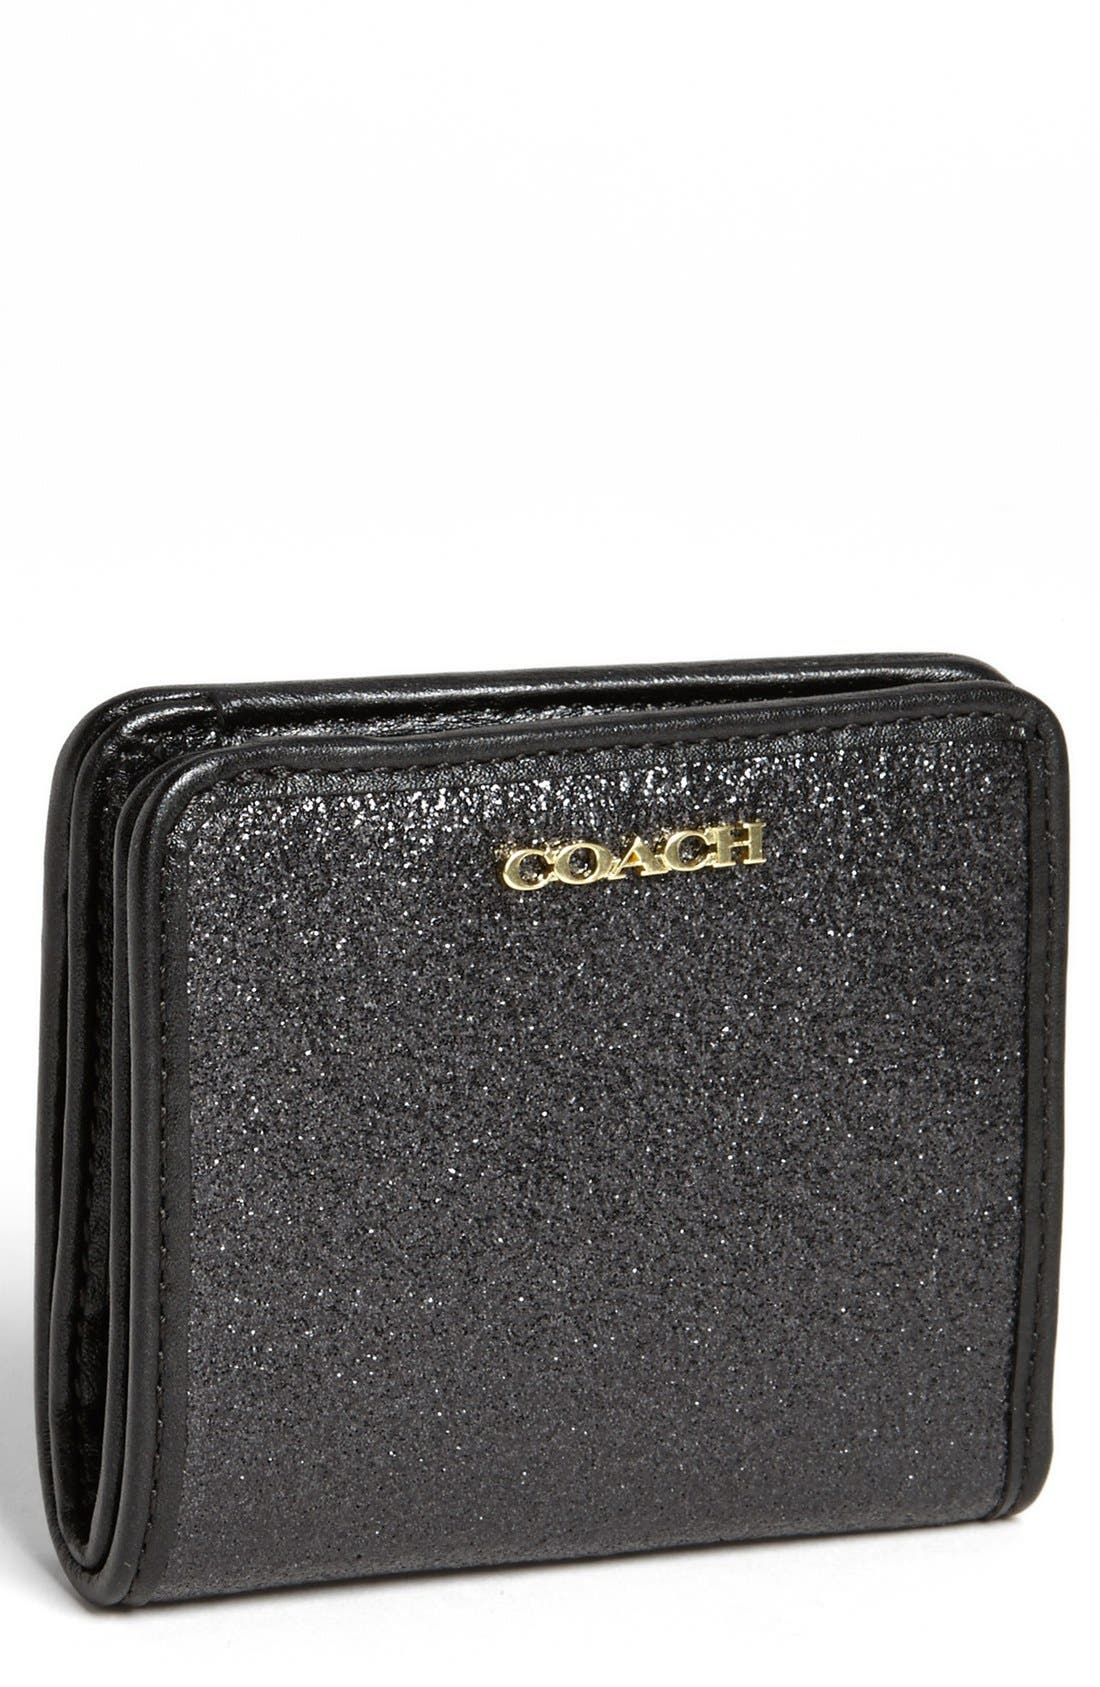 COACH 'Glitter' Bifold Wallet, Main, color, 012